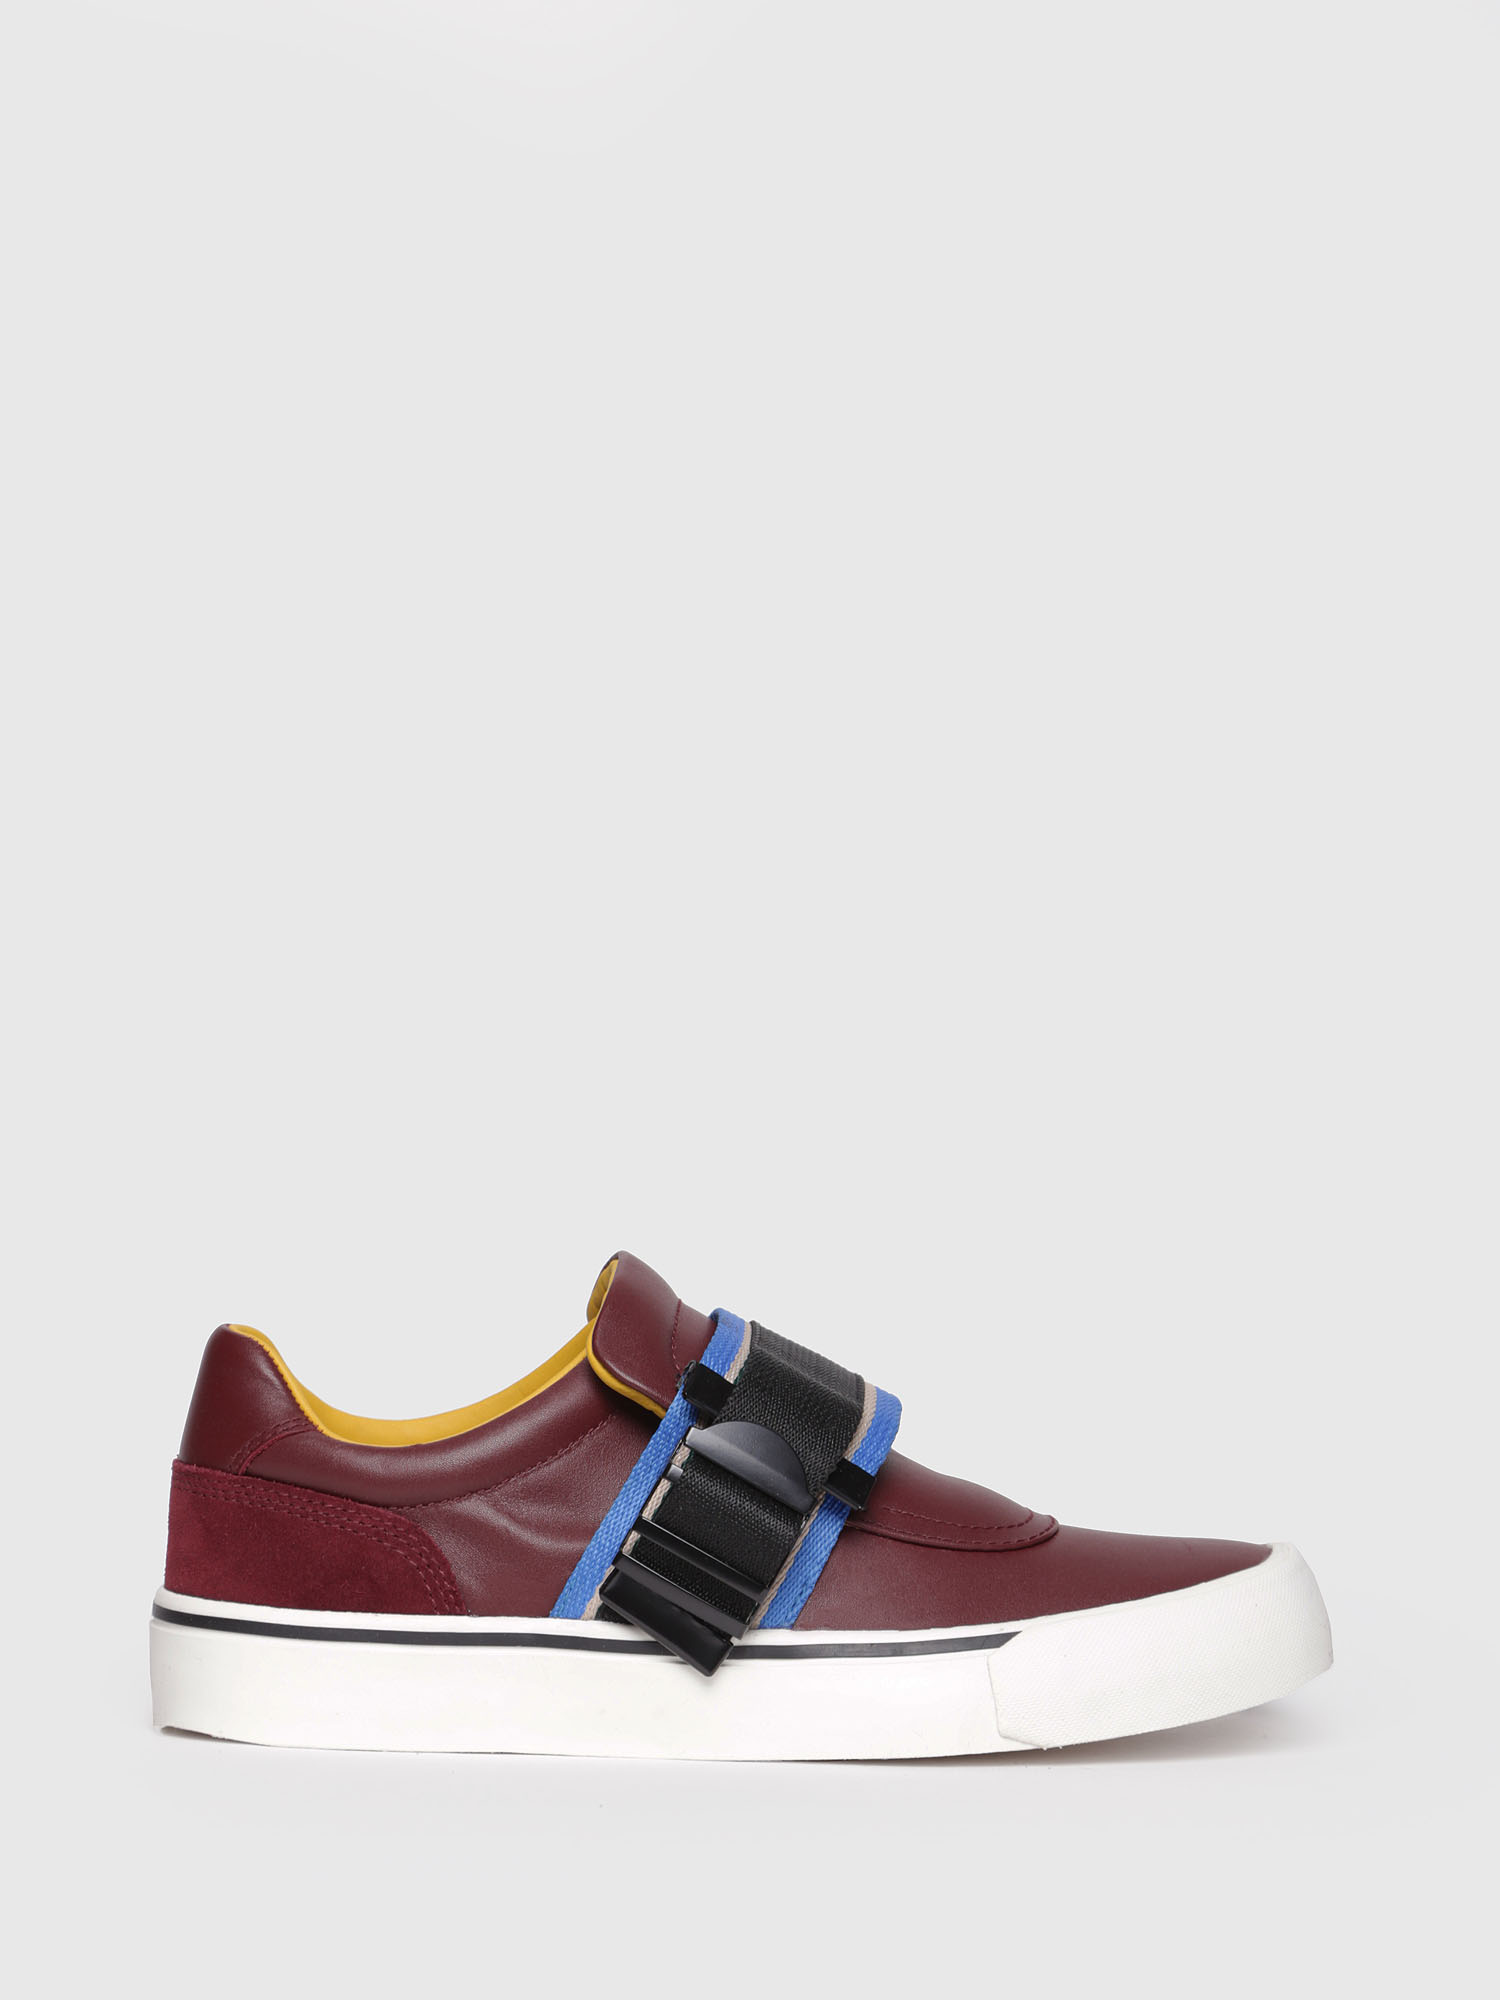 Diesel - S-FLIP LOW BUCKLE W,  - Sneakers - Image 1